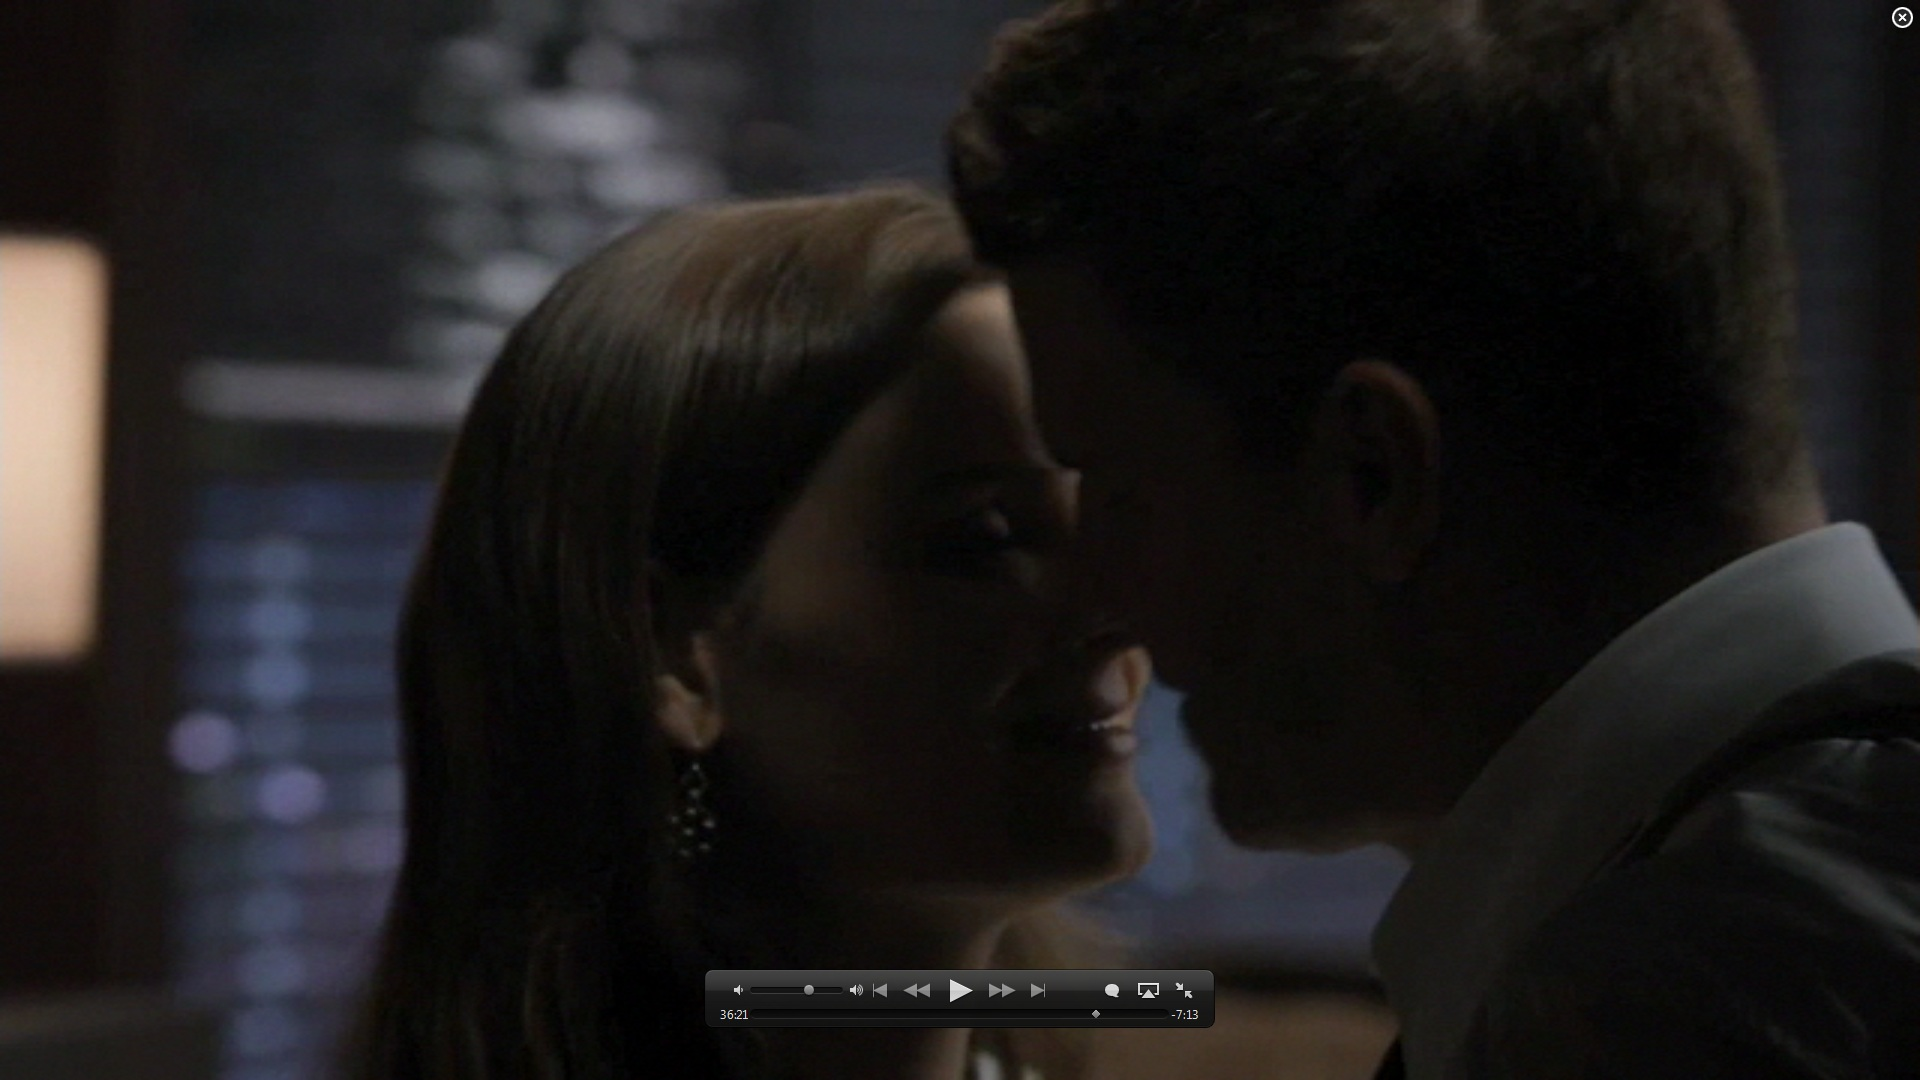 7x01 kiss booth and bones image 26582028 fanpop